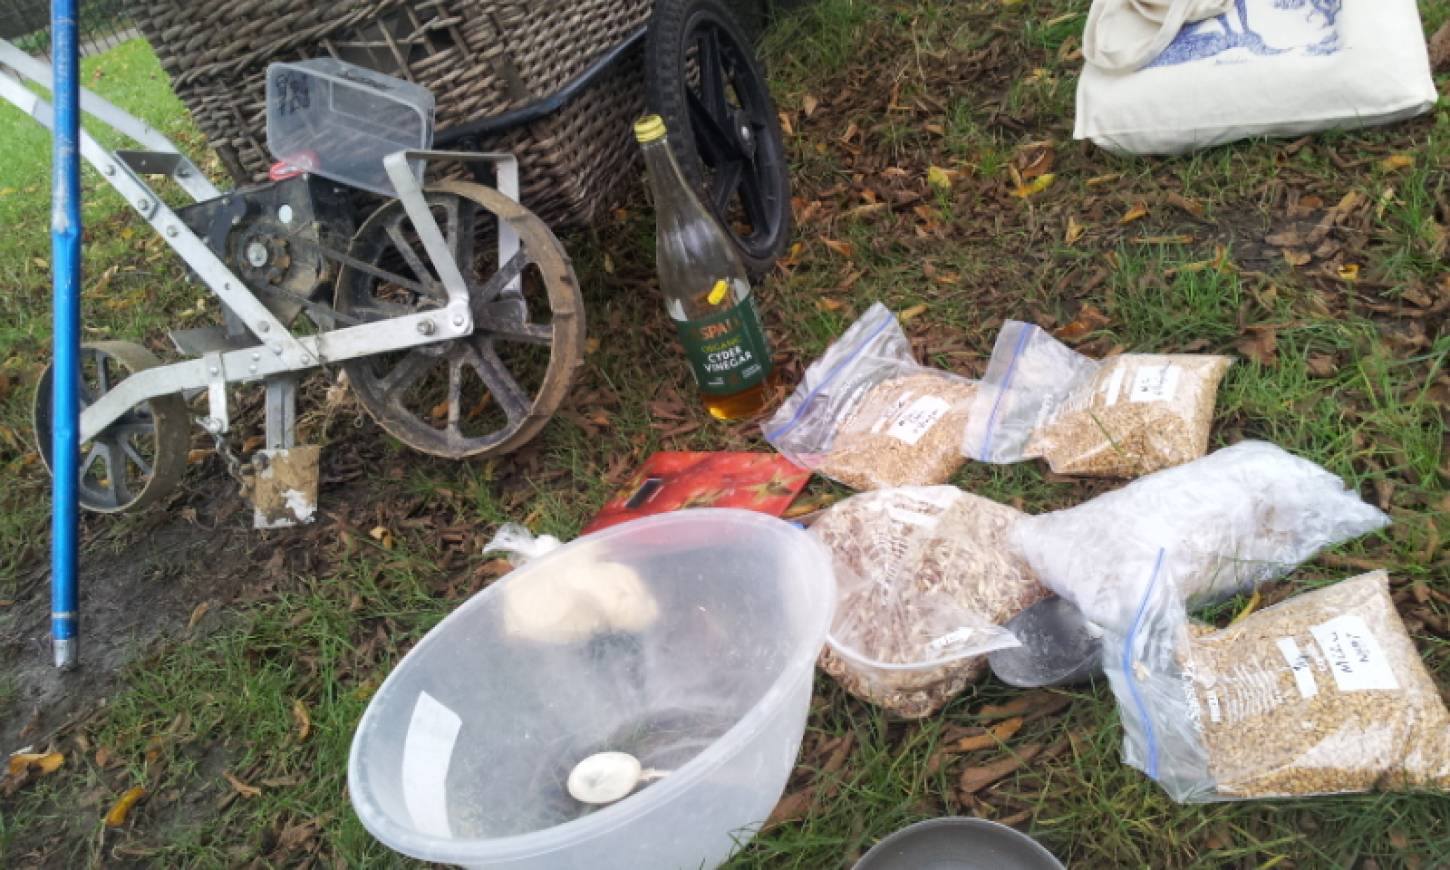 Day 1 sowing on Ruskin Park, 'the Wheats Field', the gear and seed,  pics <a href='http://www.brockwellgreenhouses.org.uk/welcome/' target=_blank>Ann Bodkin</a> - 2:33pm&nbsp;28<sup>th</sup>&nbsp;Nov.&nbsp;'15